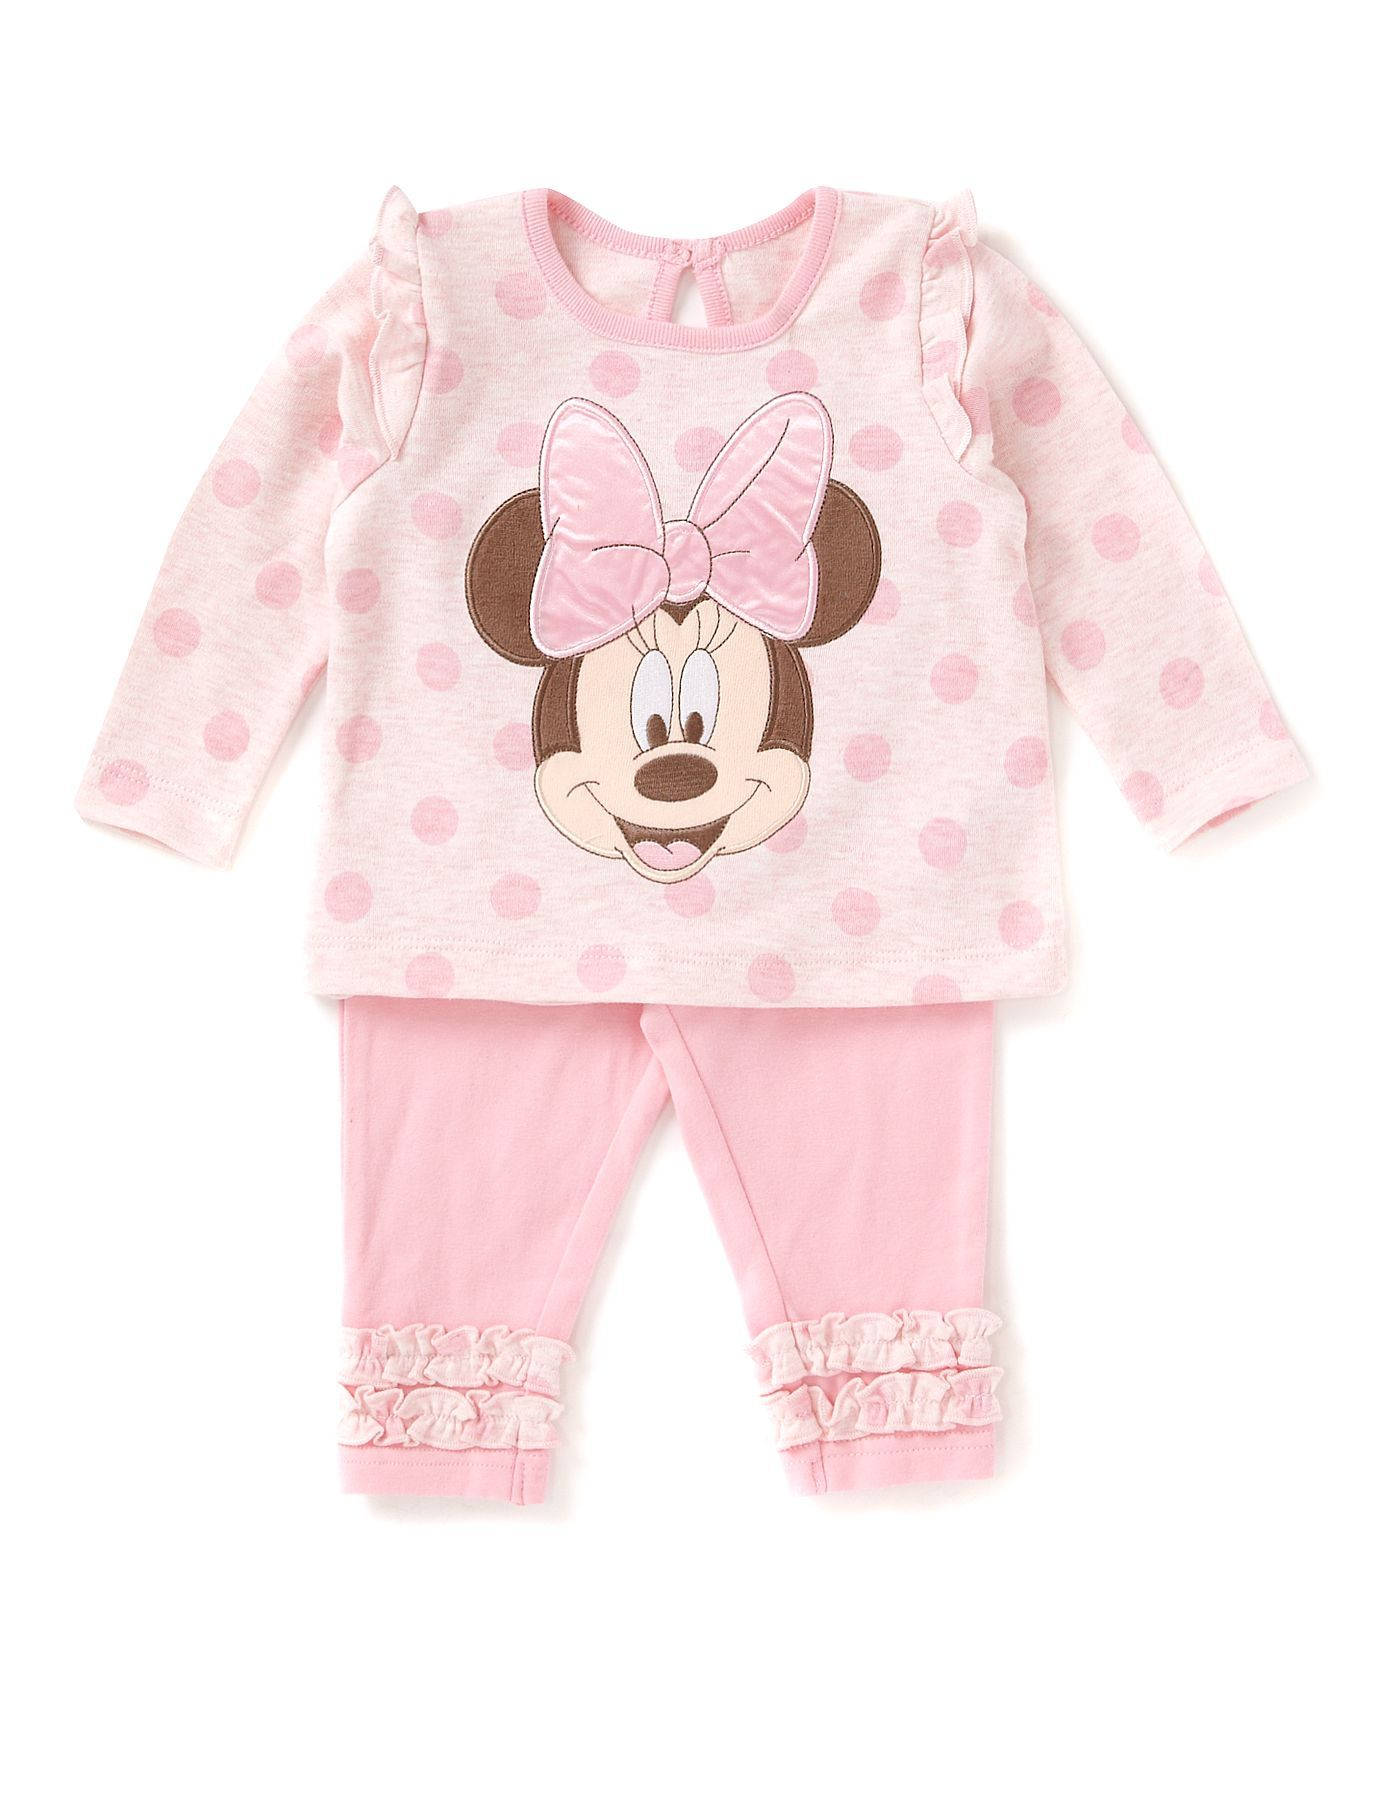 Marvelous Minnie Mouse Spot And Frill Baby Outfit | Baby | George At ASDA